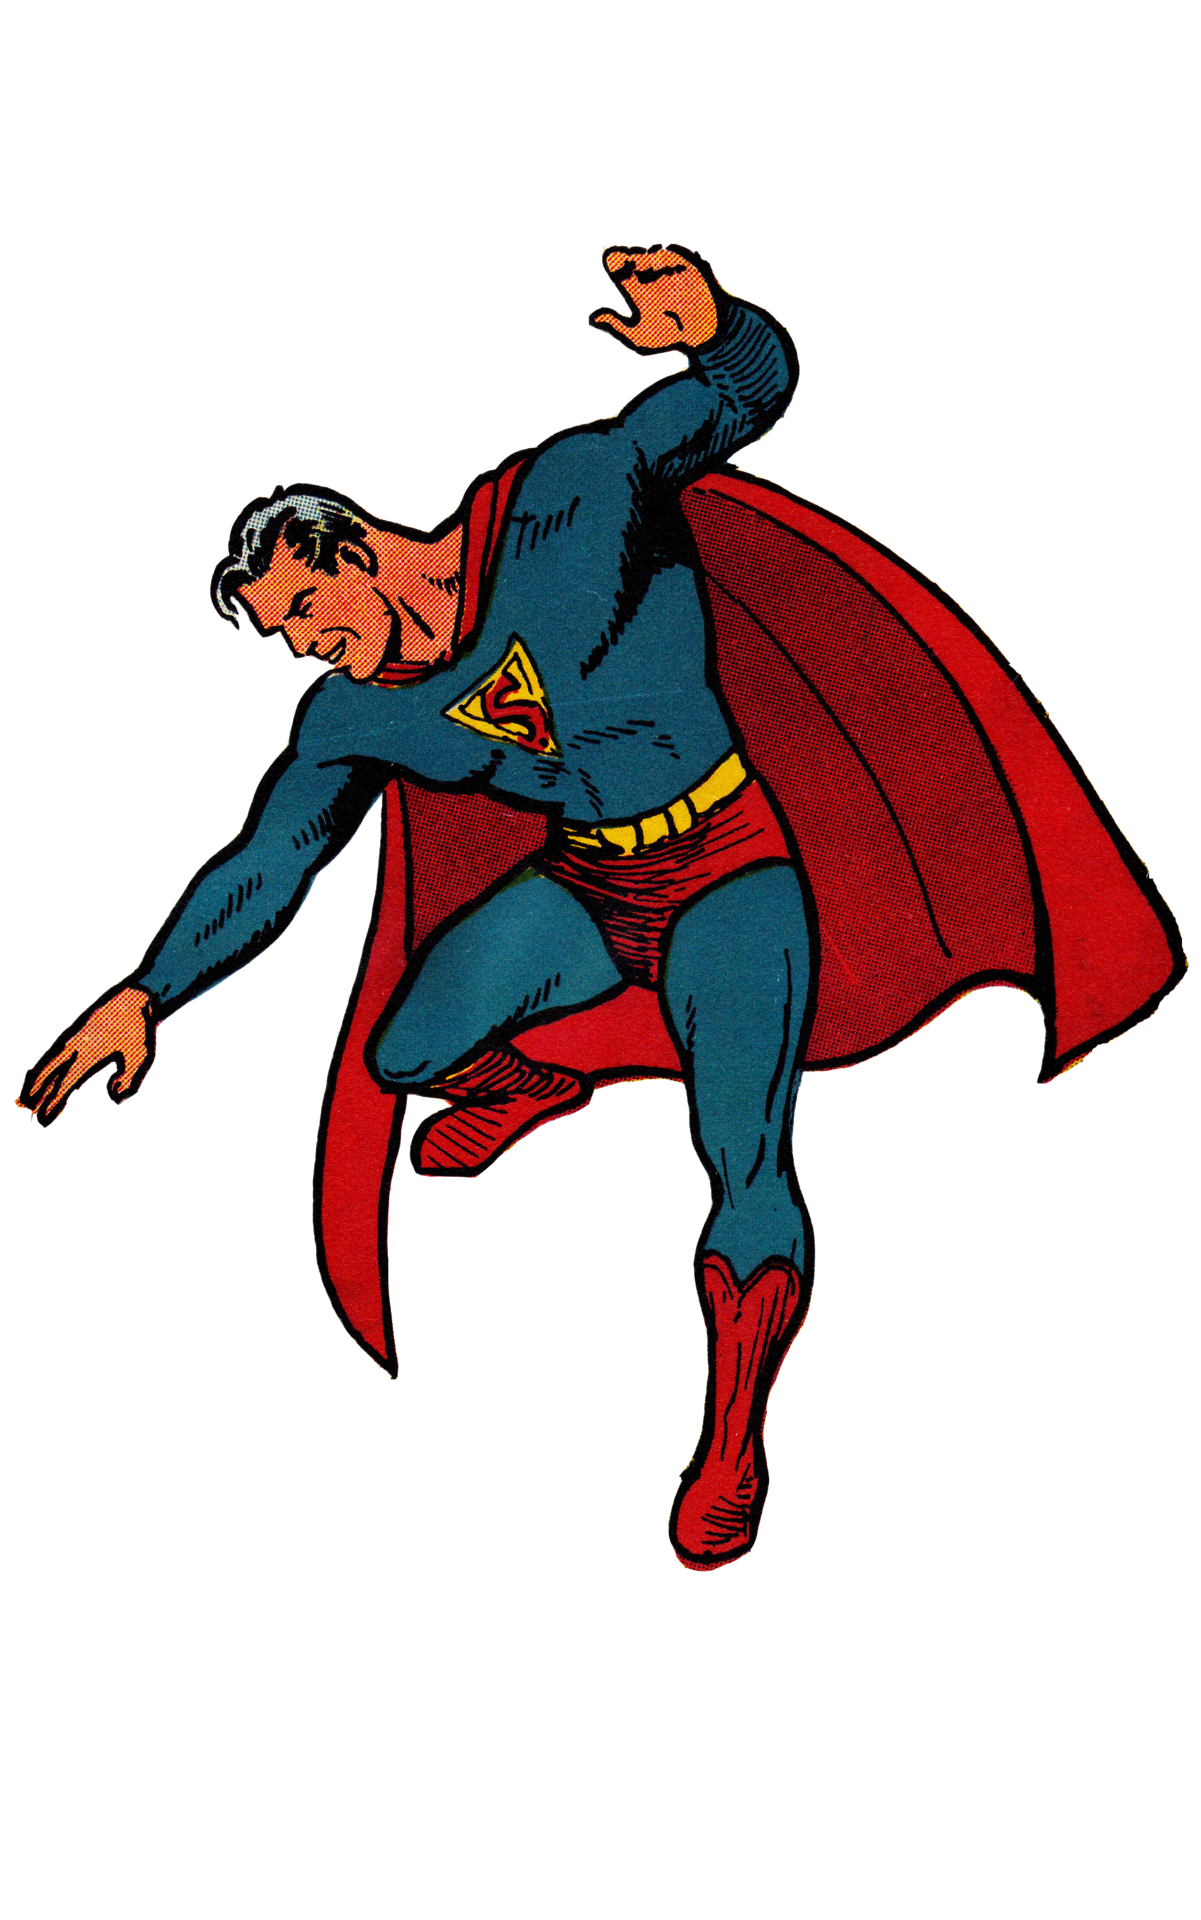 Vintage comic book superhero clipart vector royalty free download Golden Age Superman By Joe Shuster - used to have similar